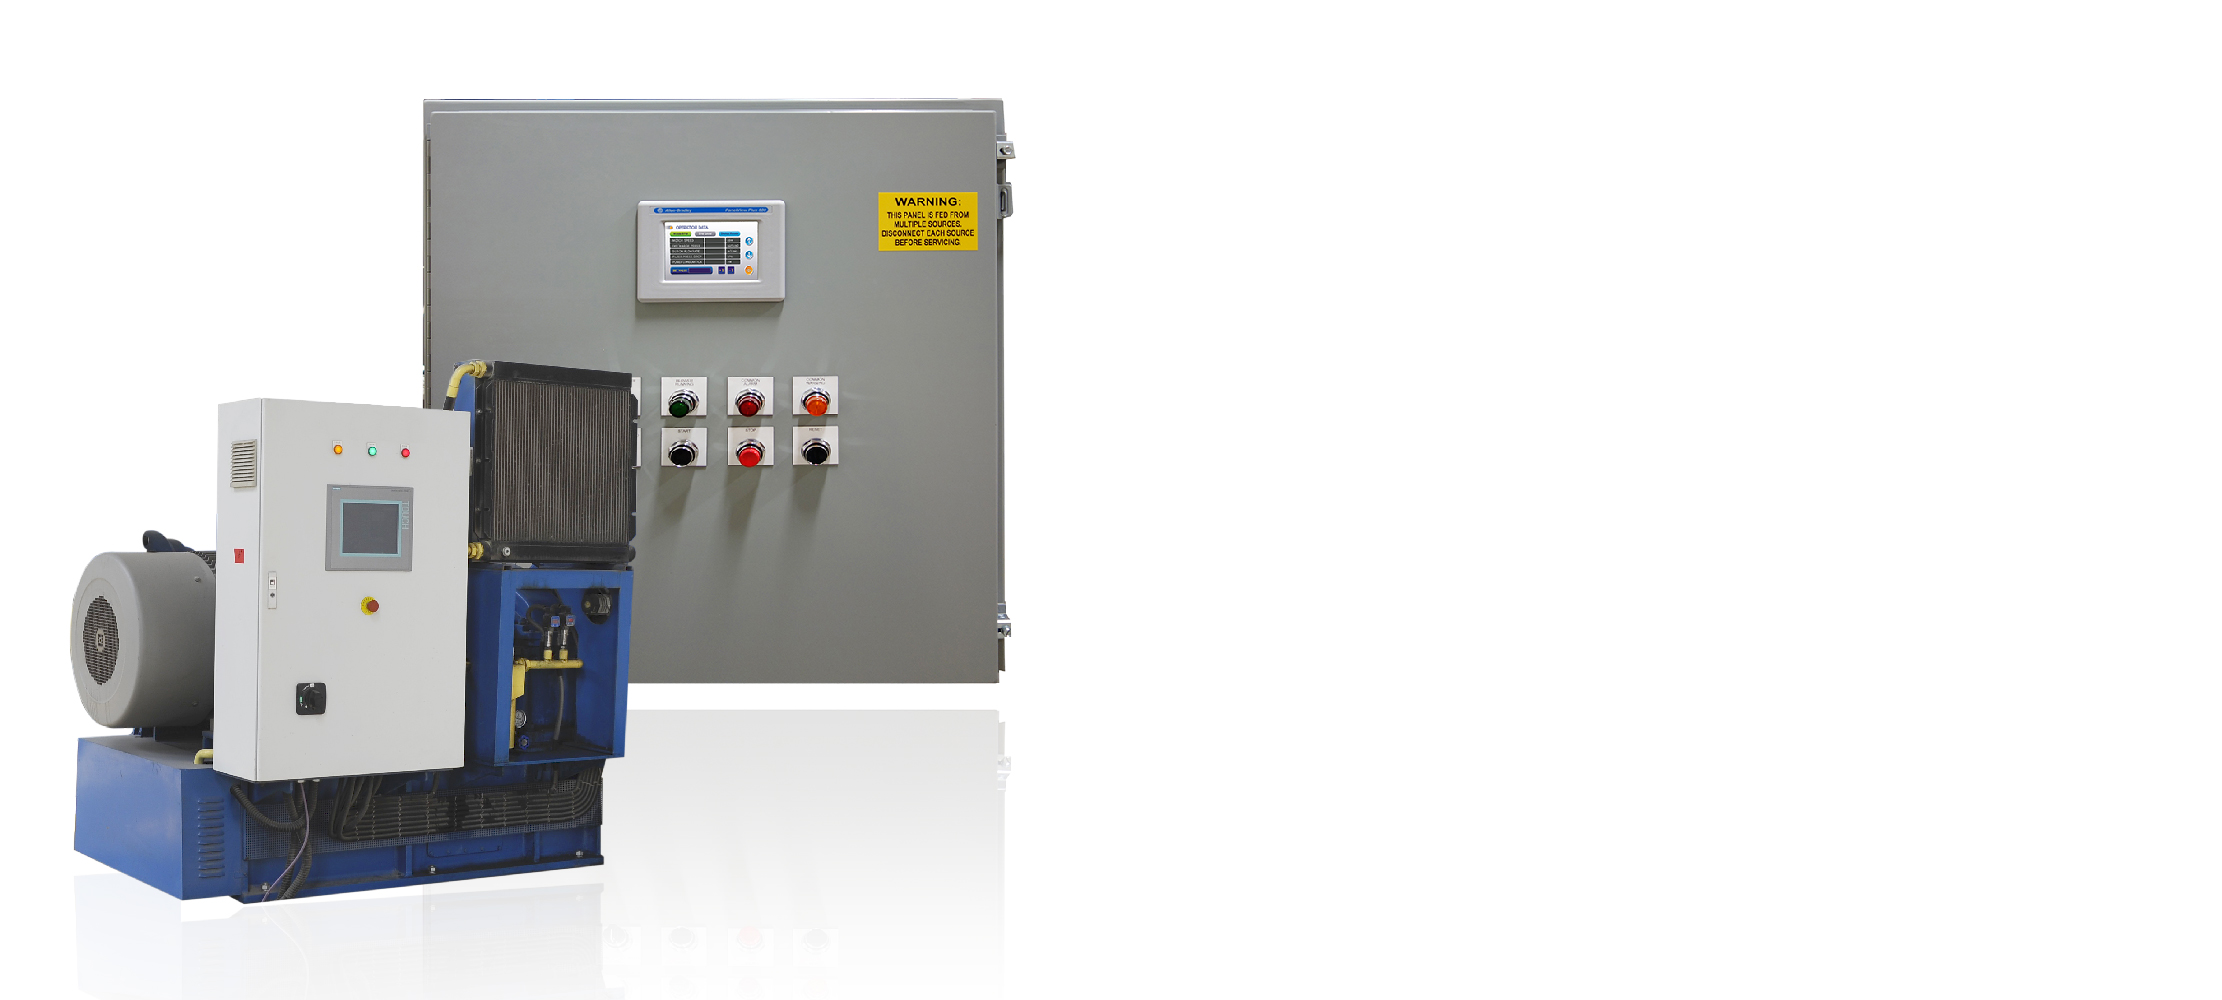 Dorable Control Panel Manufacturers In Usa Vignette - Electrical ...